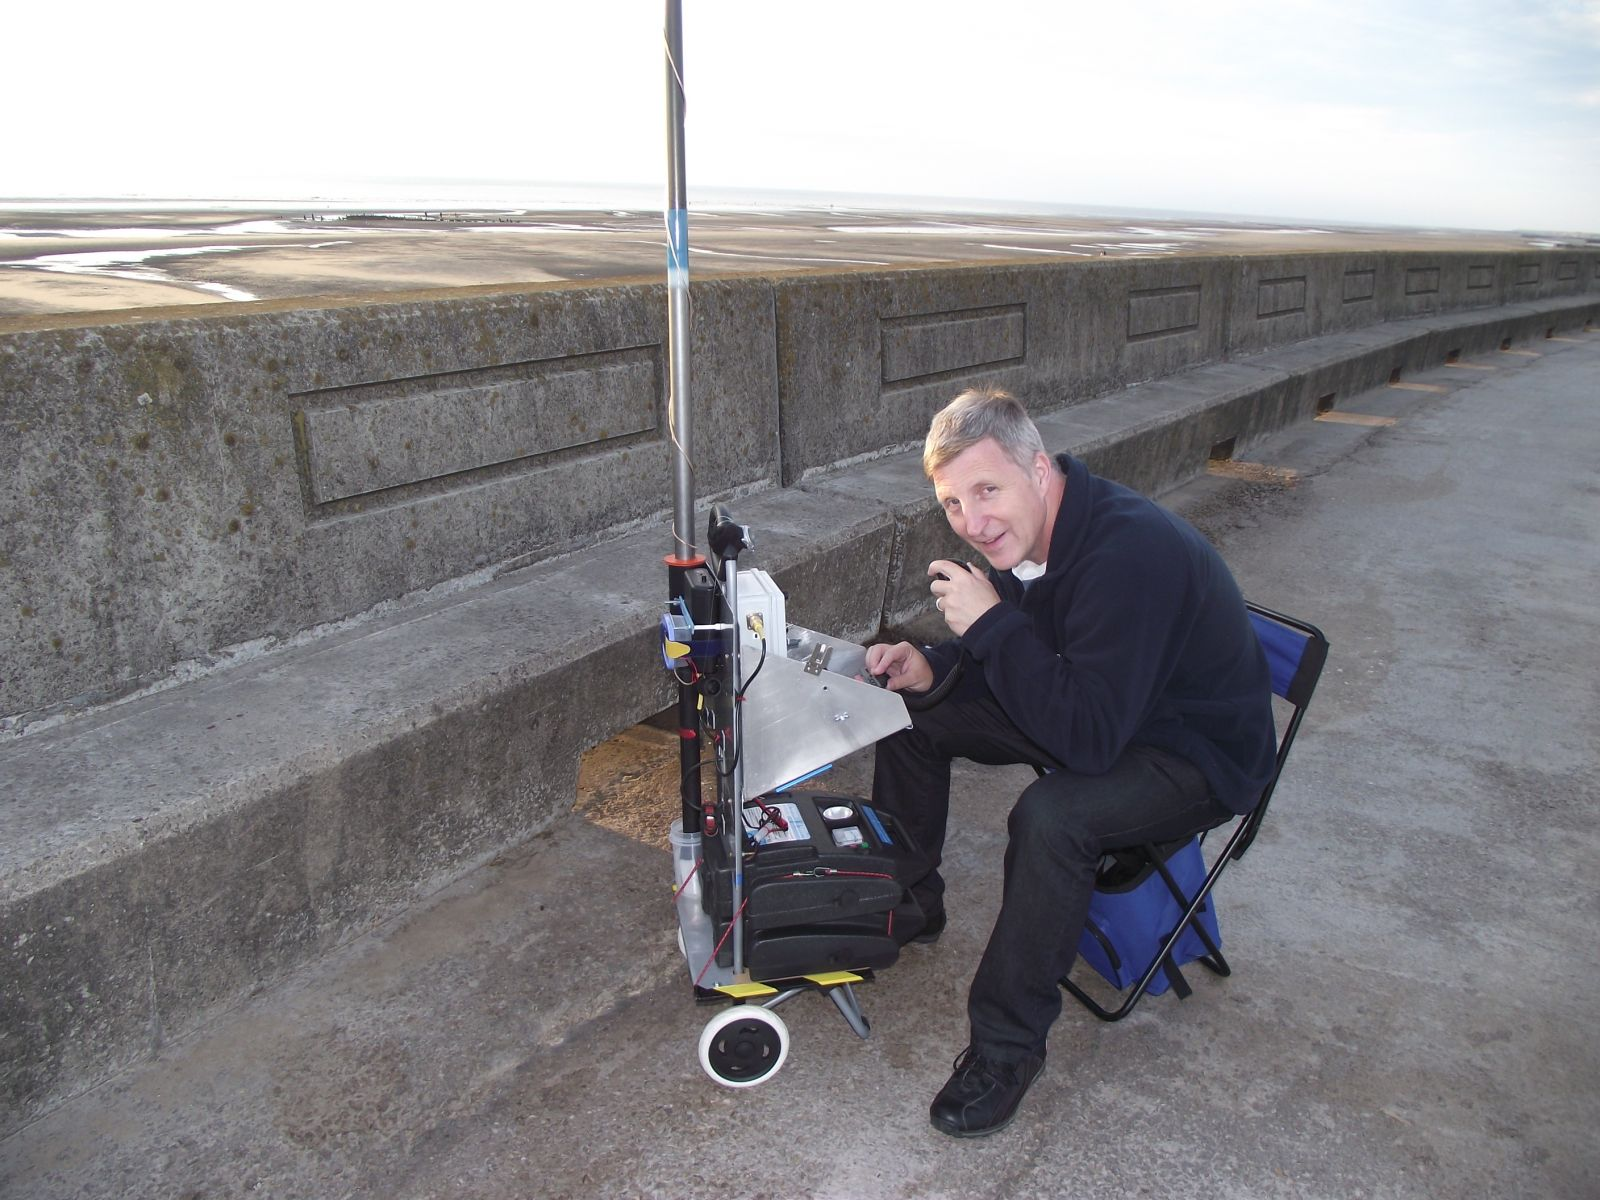 Me and my trolley at the beach